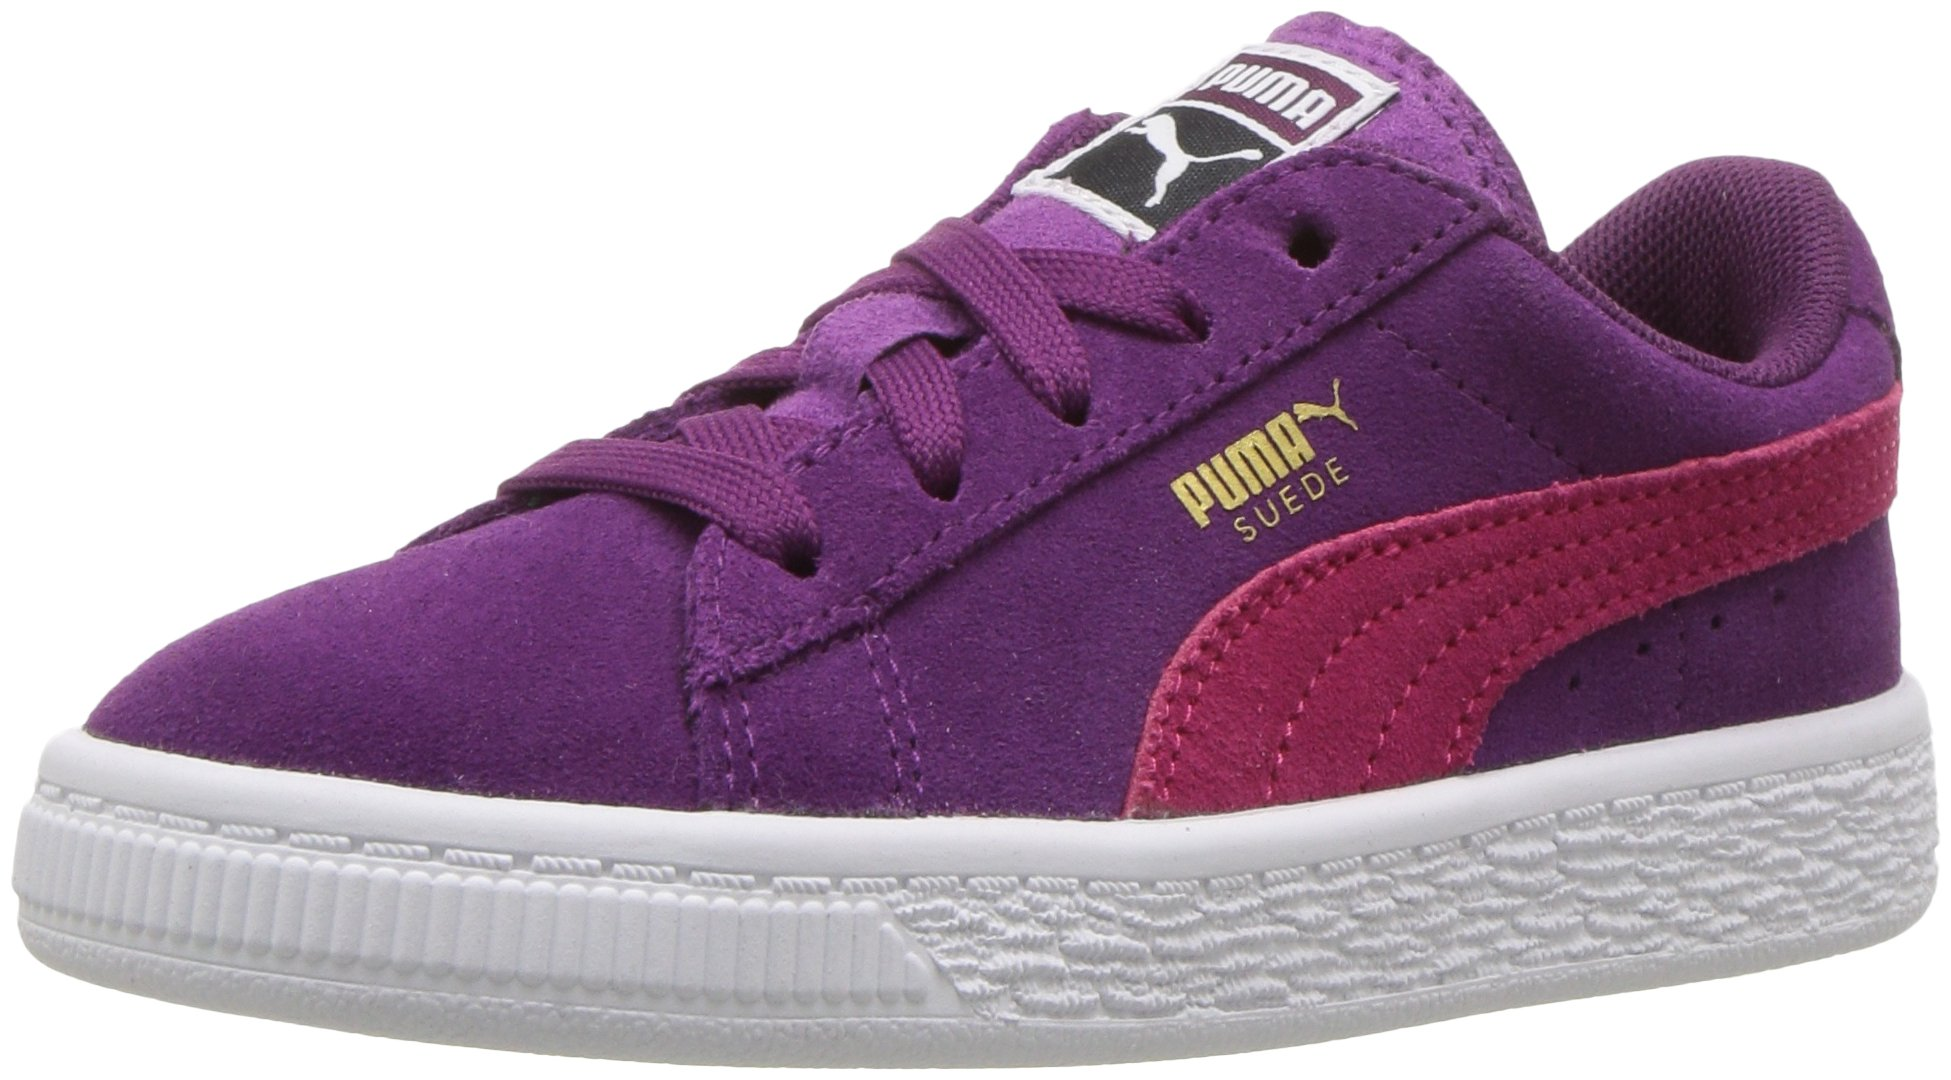 PUMA Kids' Suede Sneaker, Dark Purple-Love Potion, 9 M US Toddler